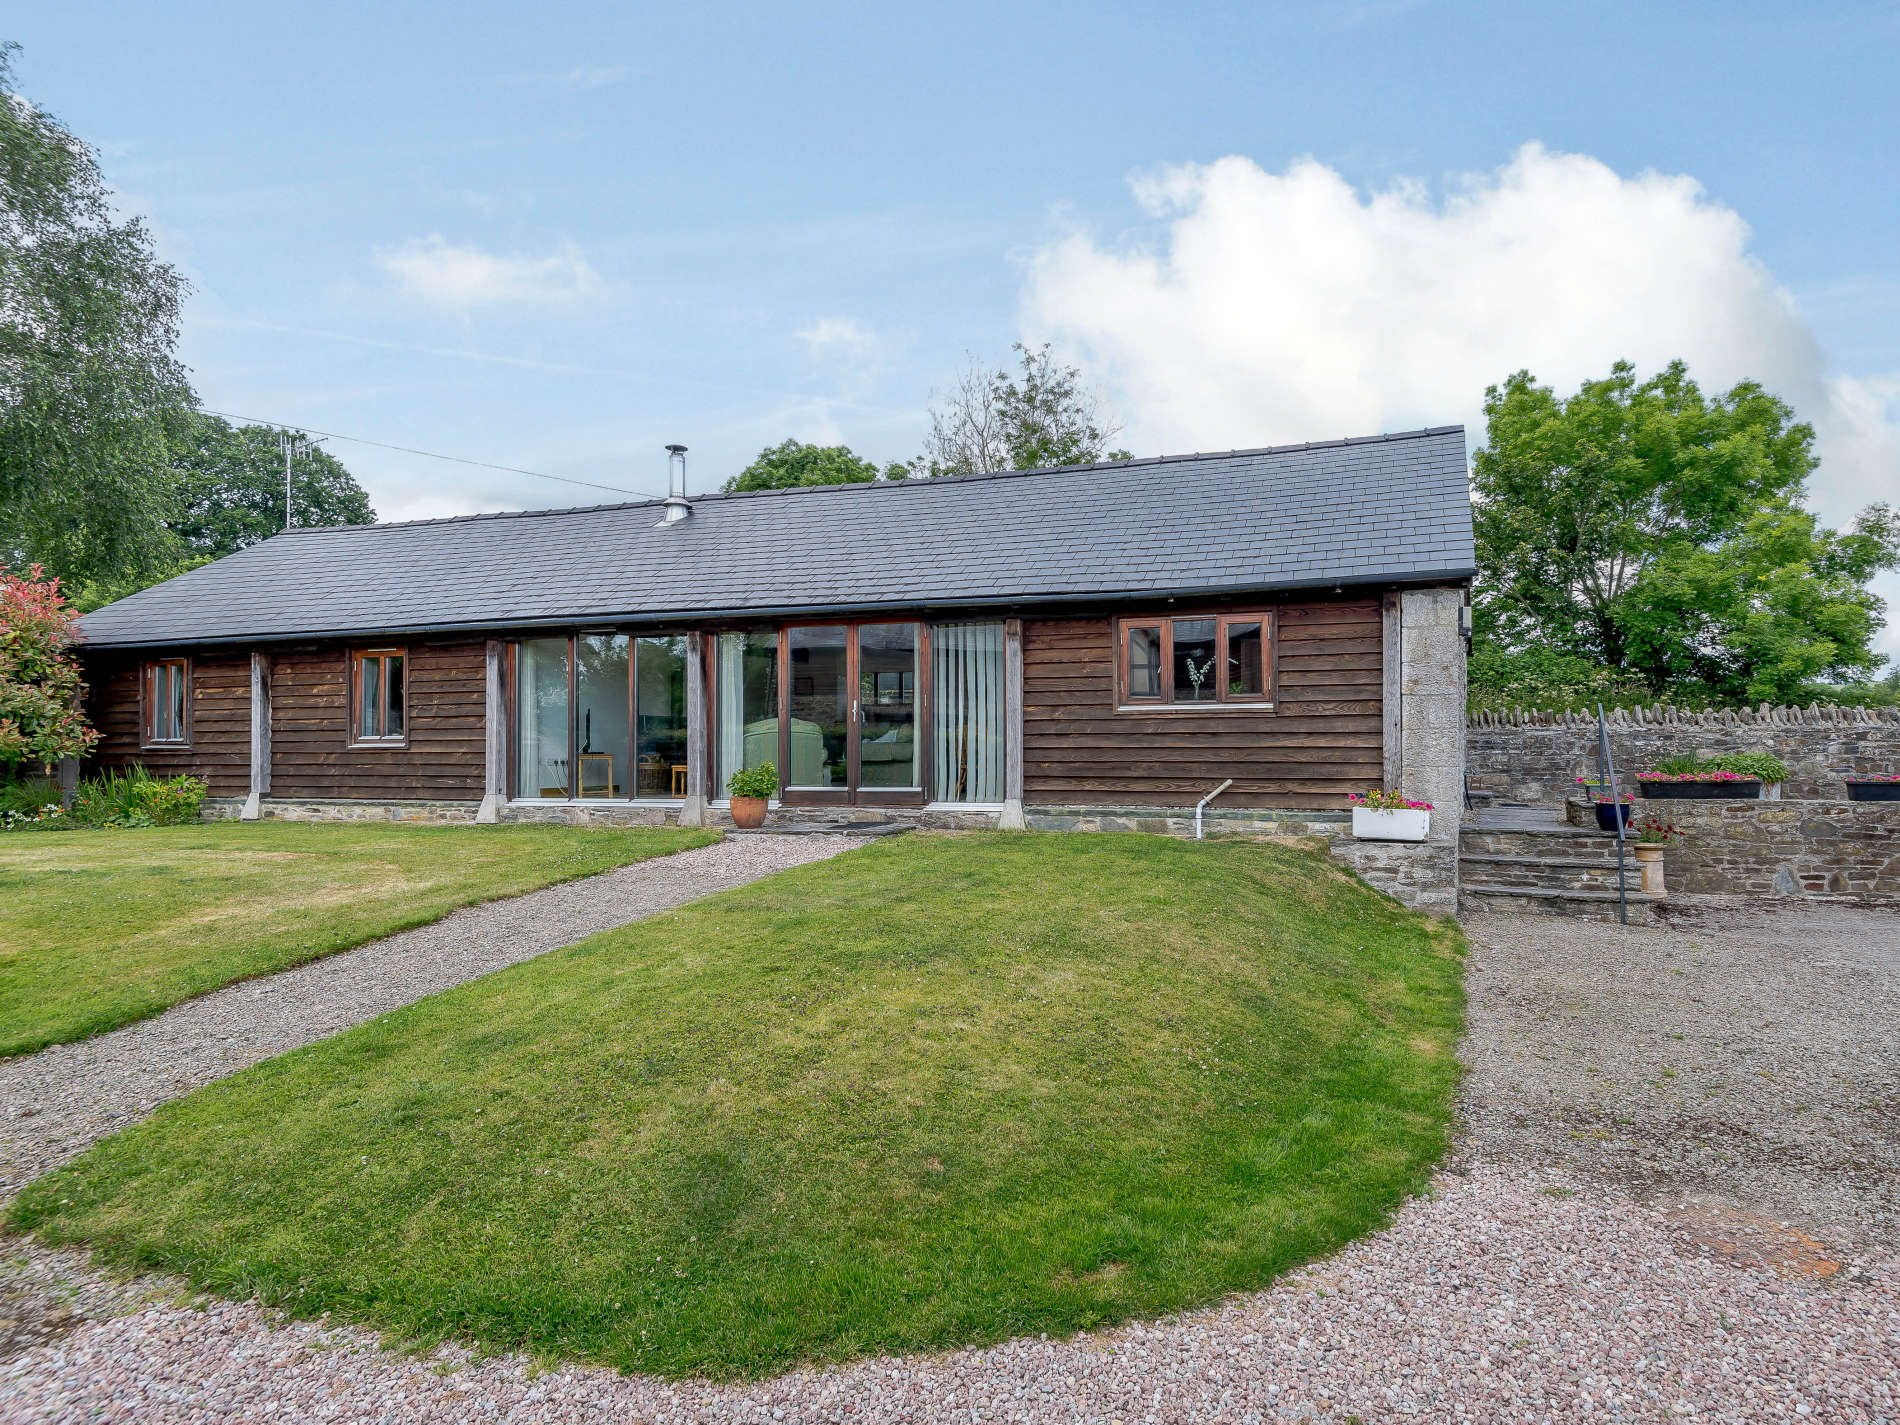 2 Bedroom Barn in Mid Wales, Pembrokeshire and the South